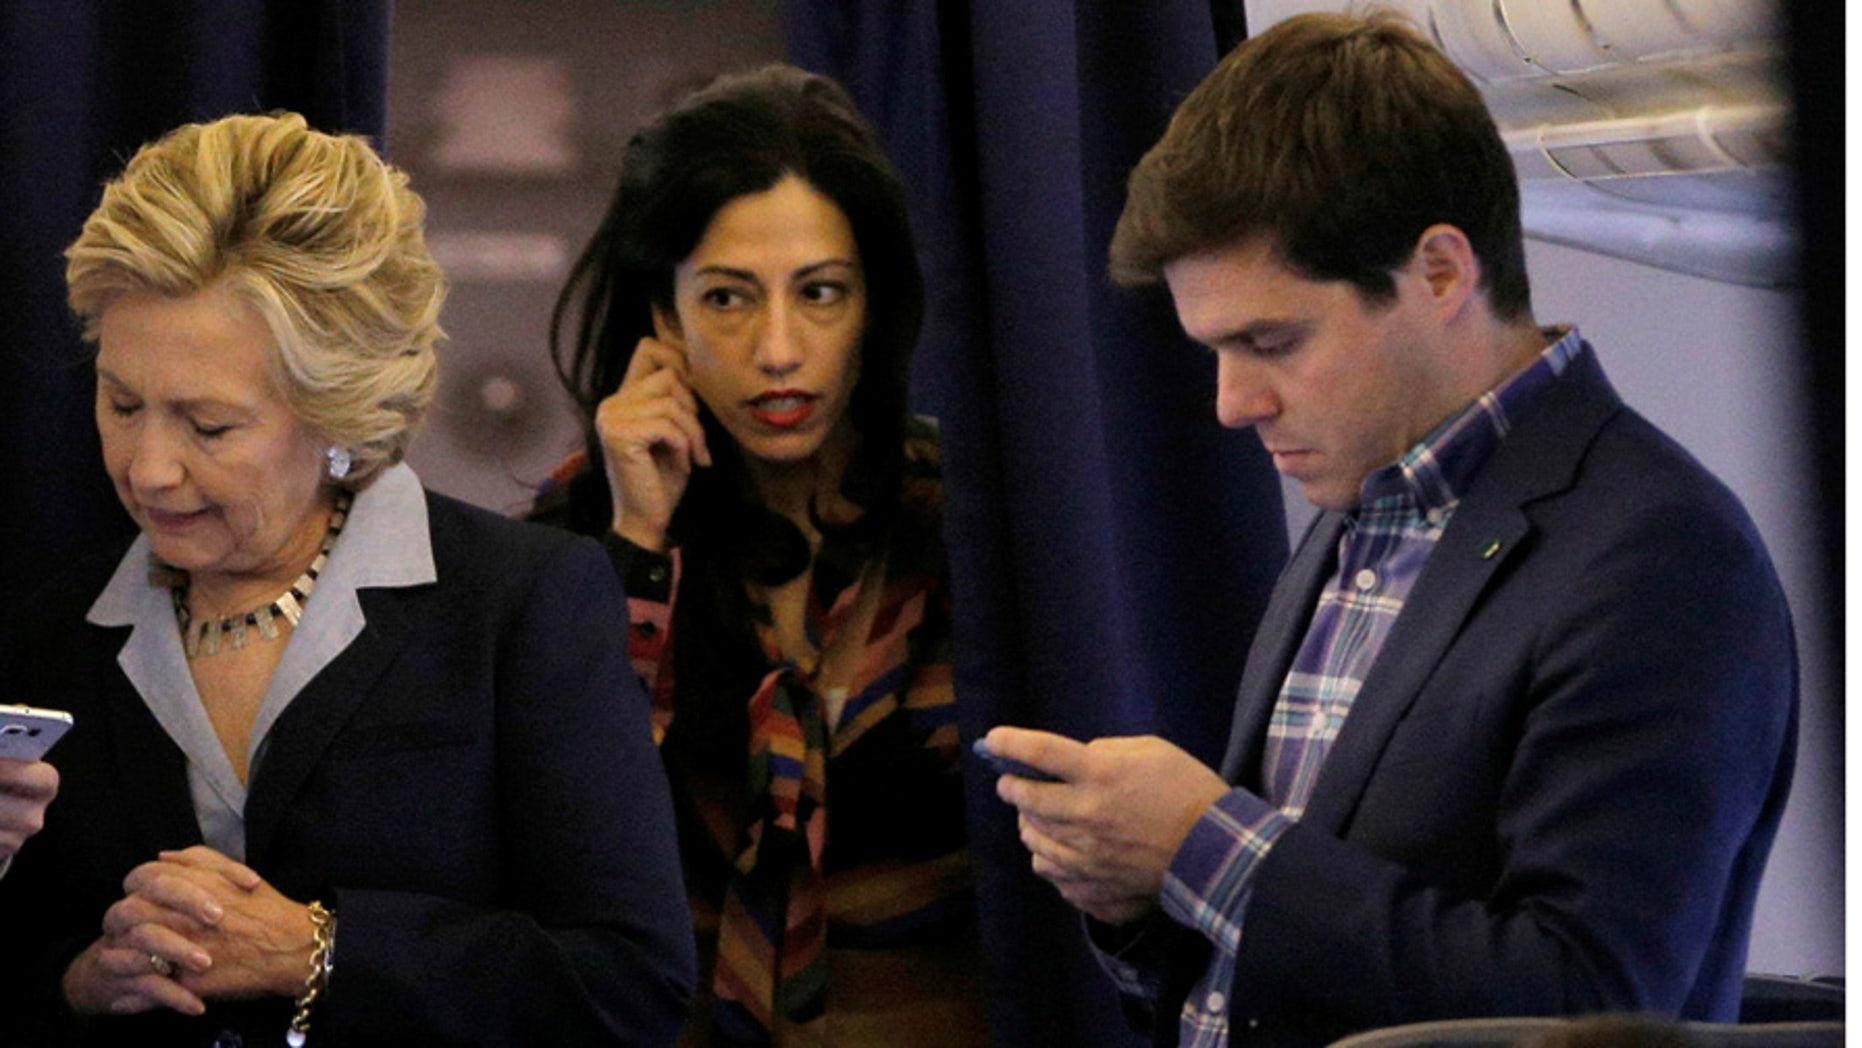 Hillary Clinton stands with longtime aide Huma Abedin, middle, and press secretary Nick Merrill, right, onboard her campaign plane in October 2016.